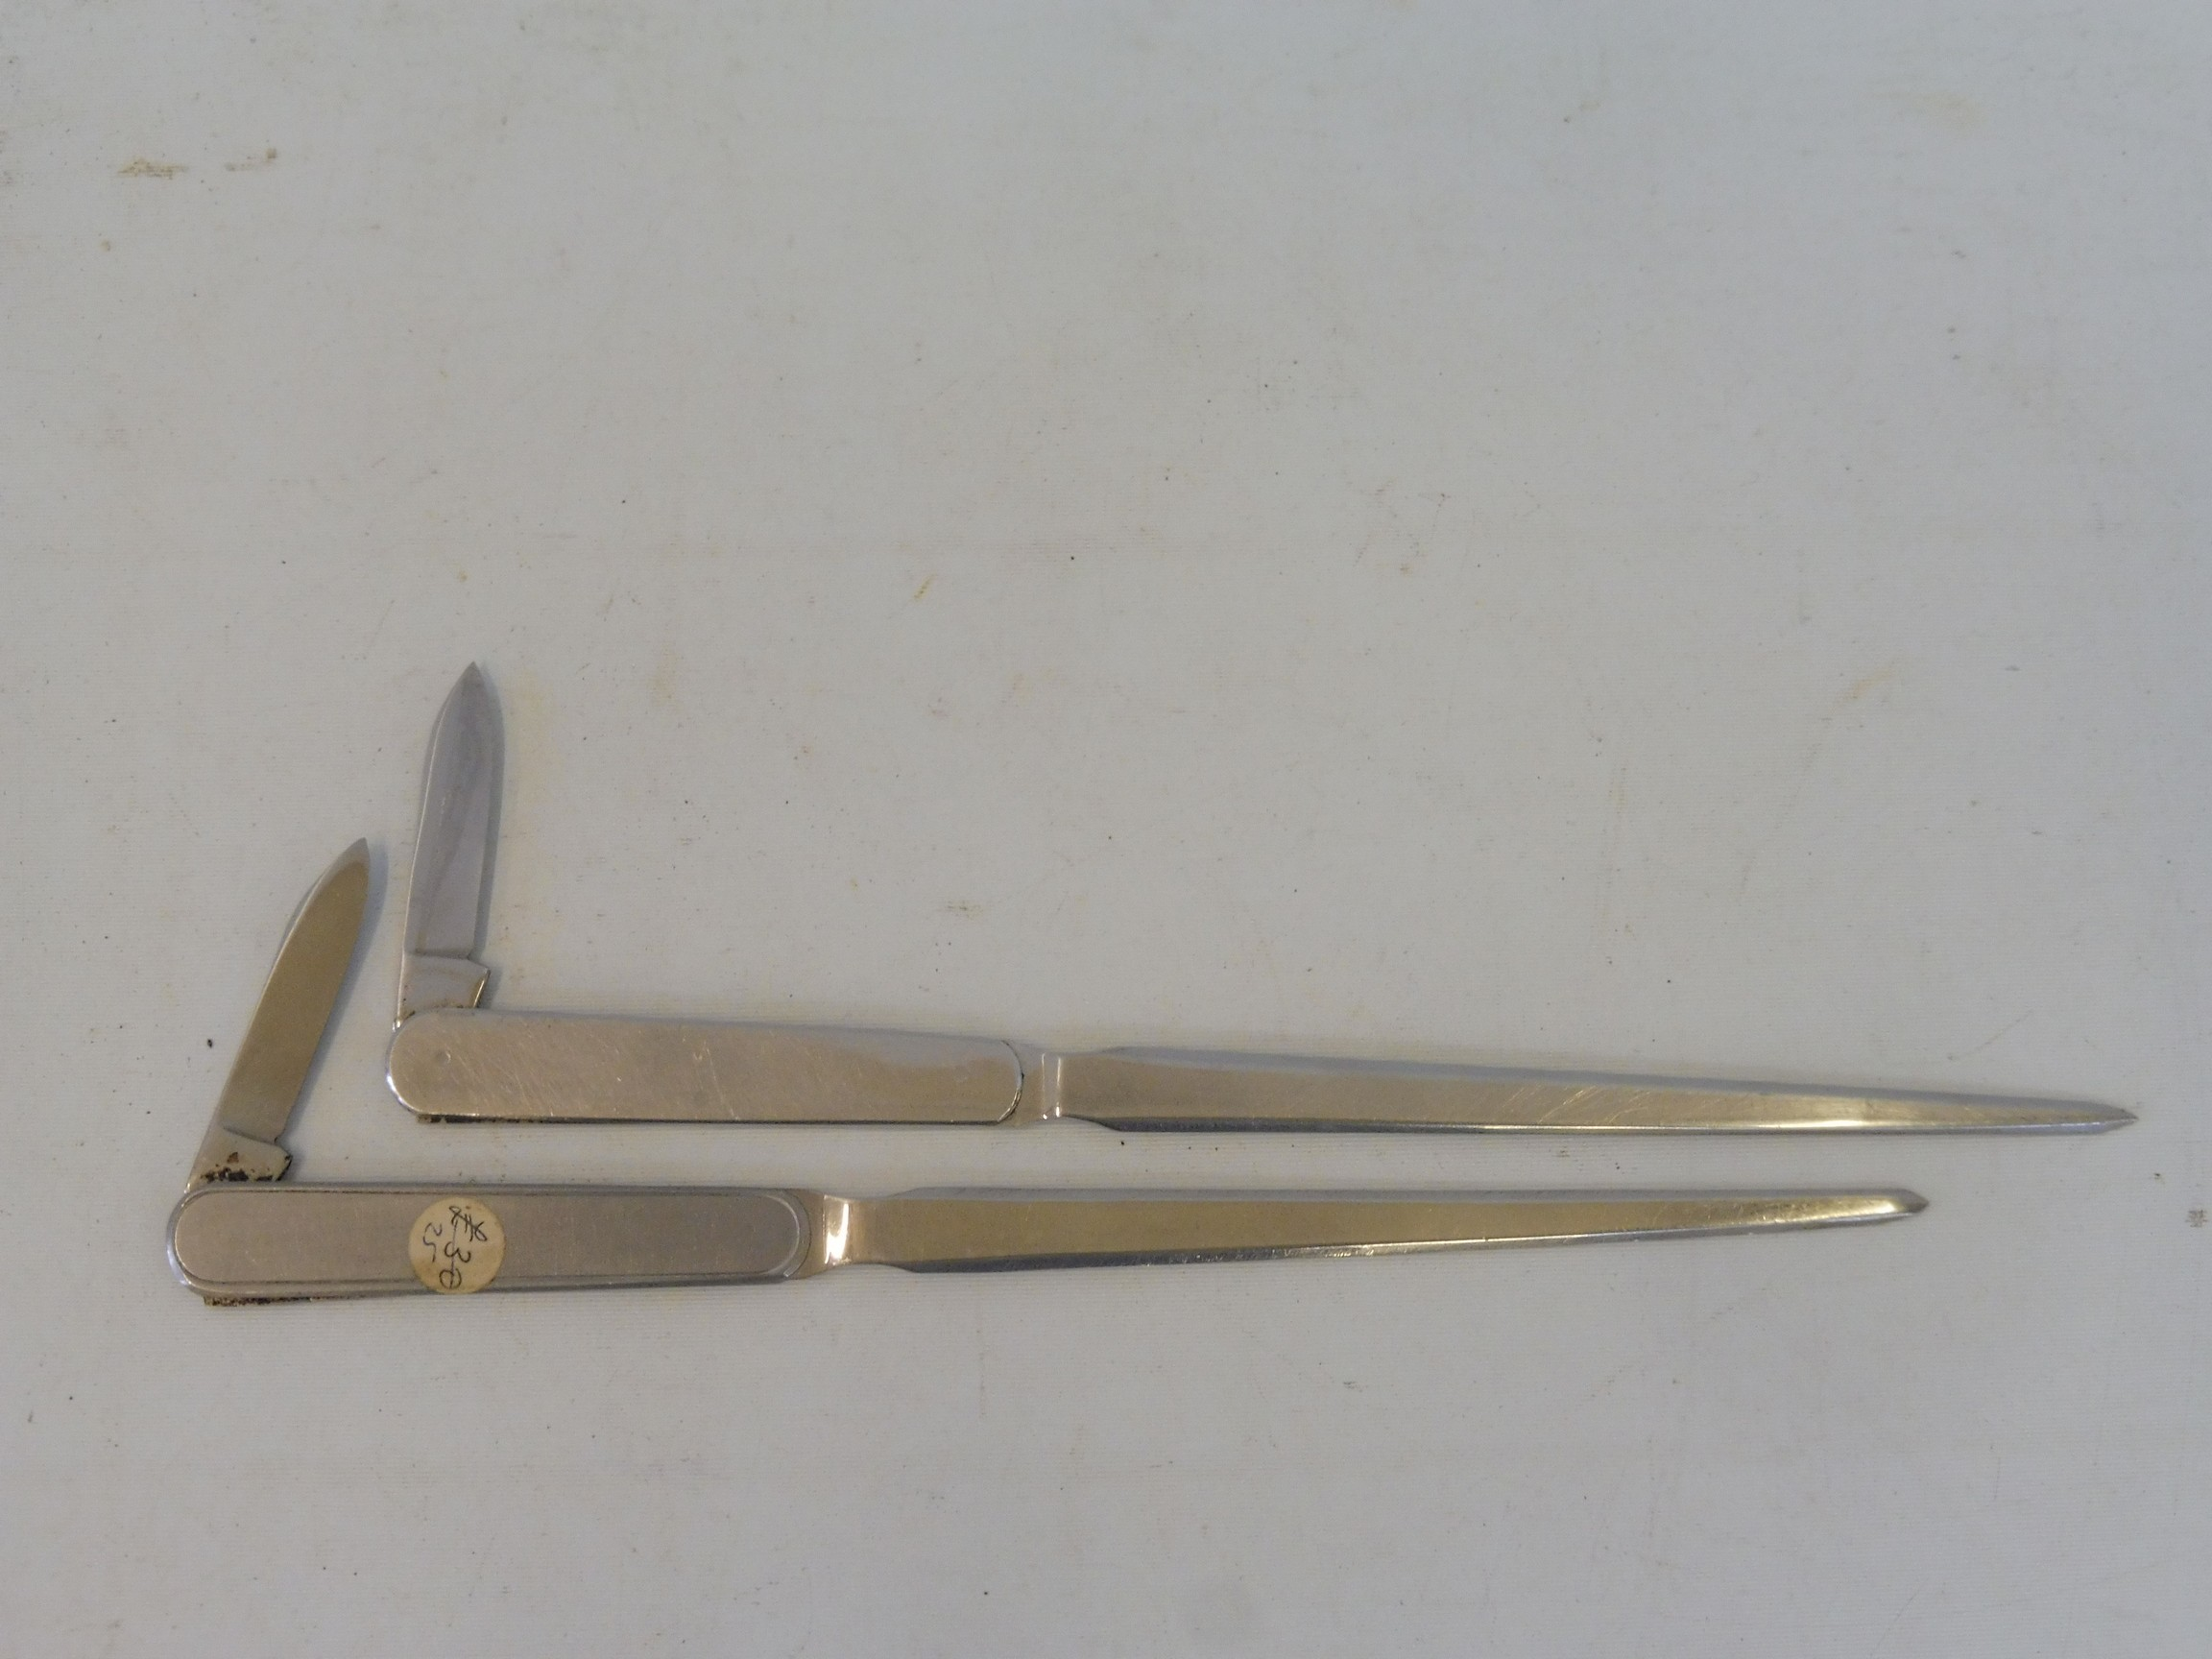 Two letter openers, one advertising Dunlop, the other Triumph (British Leyland). - Image 2 of 2